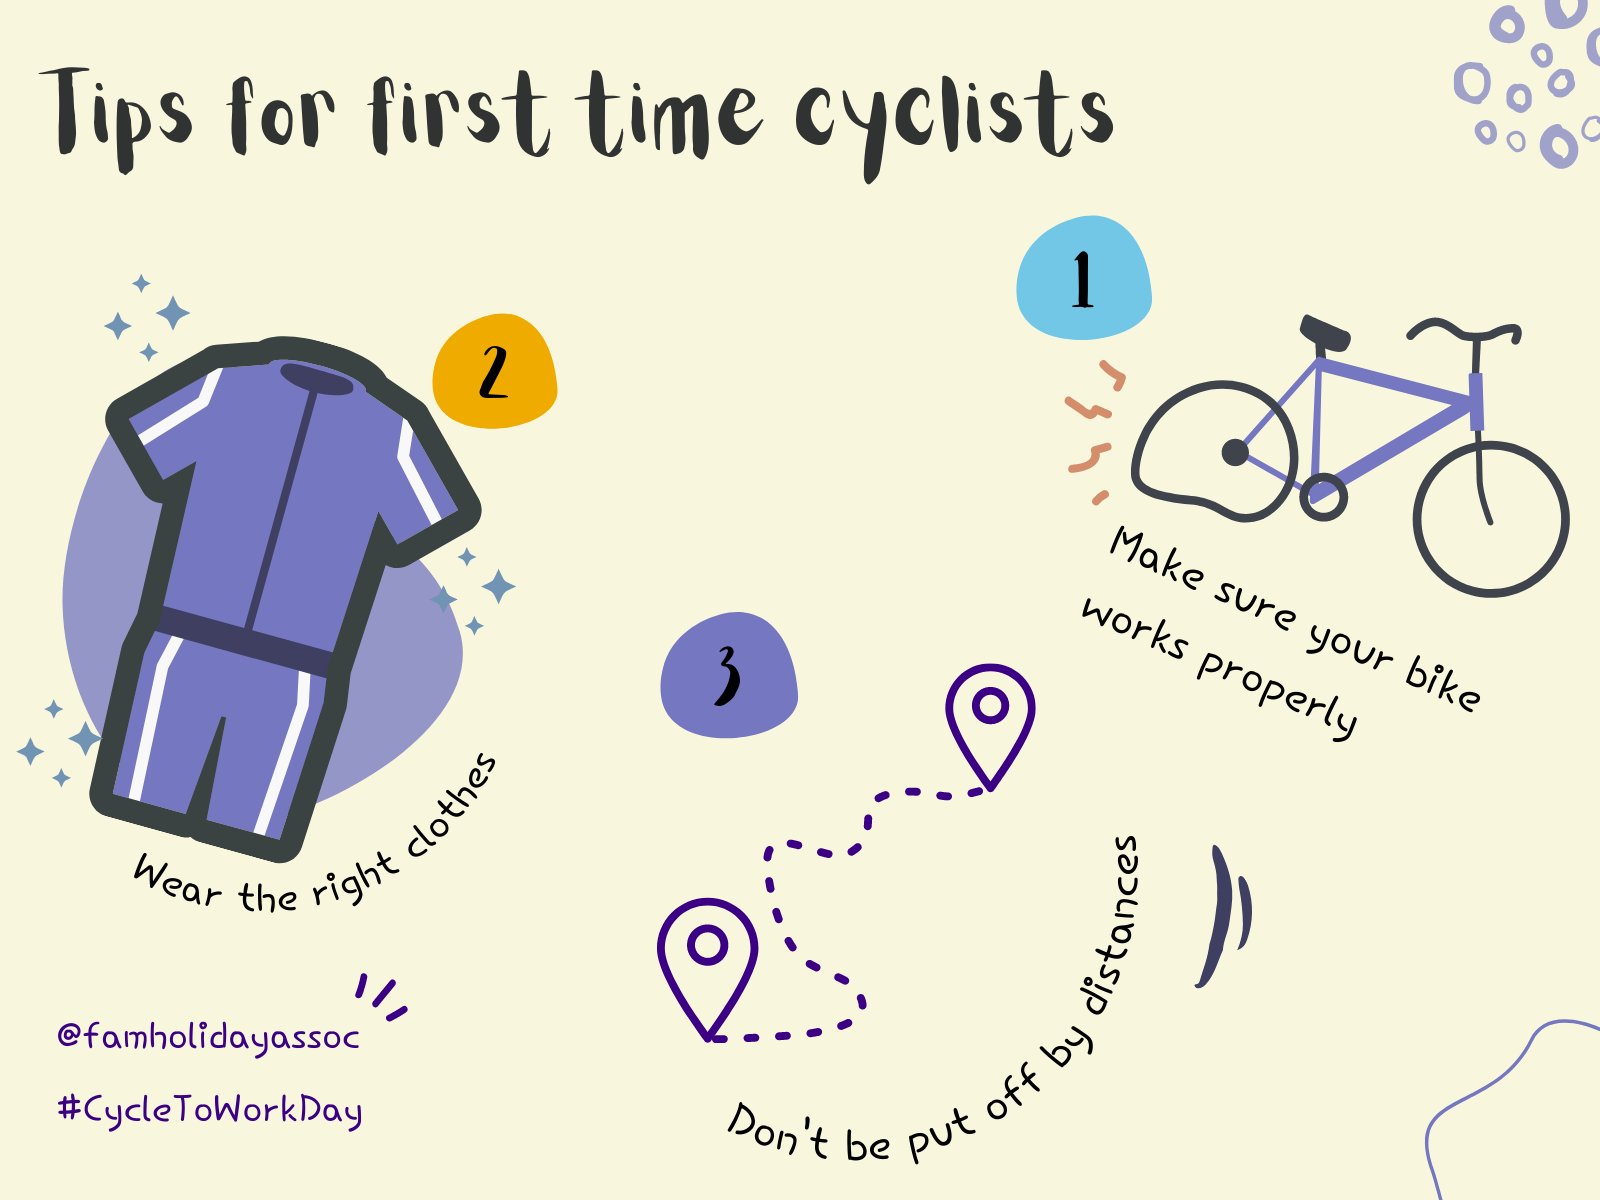 A graphic stating the top tips for first time cyclists: 1) Make sure your bike works properly, 2) Wear the right clothes, and 3) Don't be put off by distances.